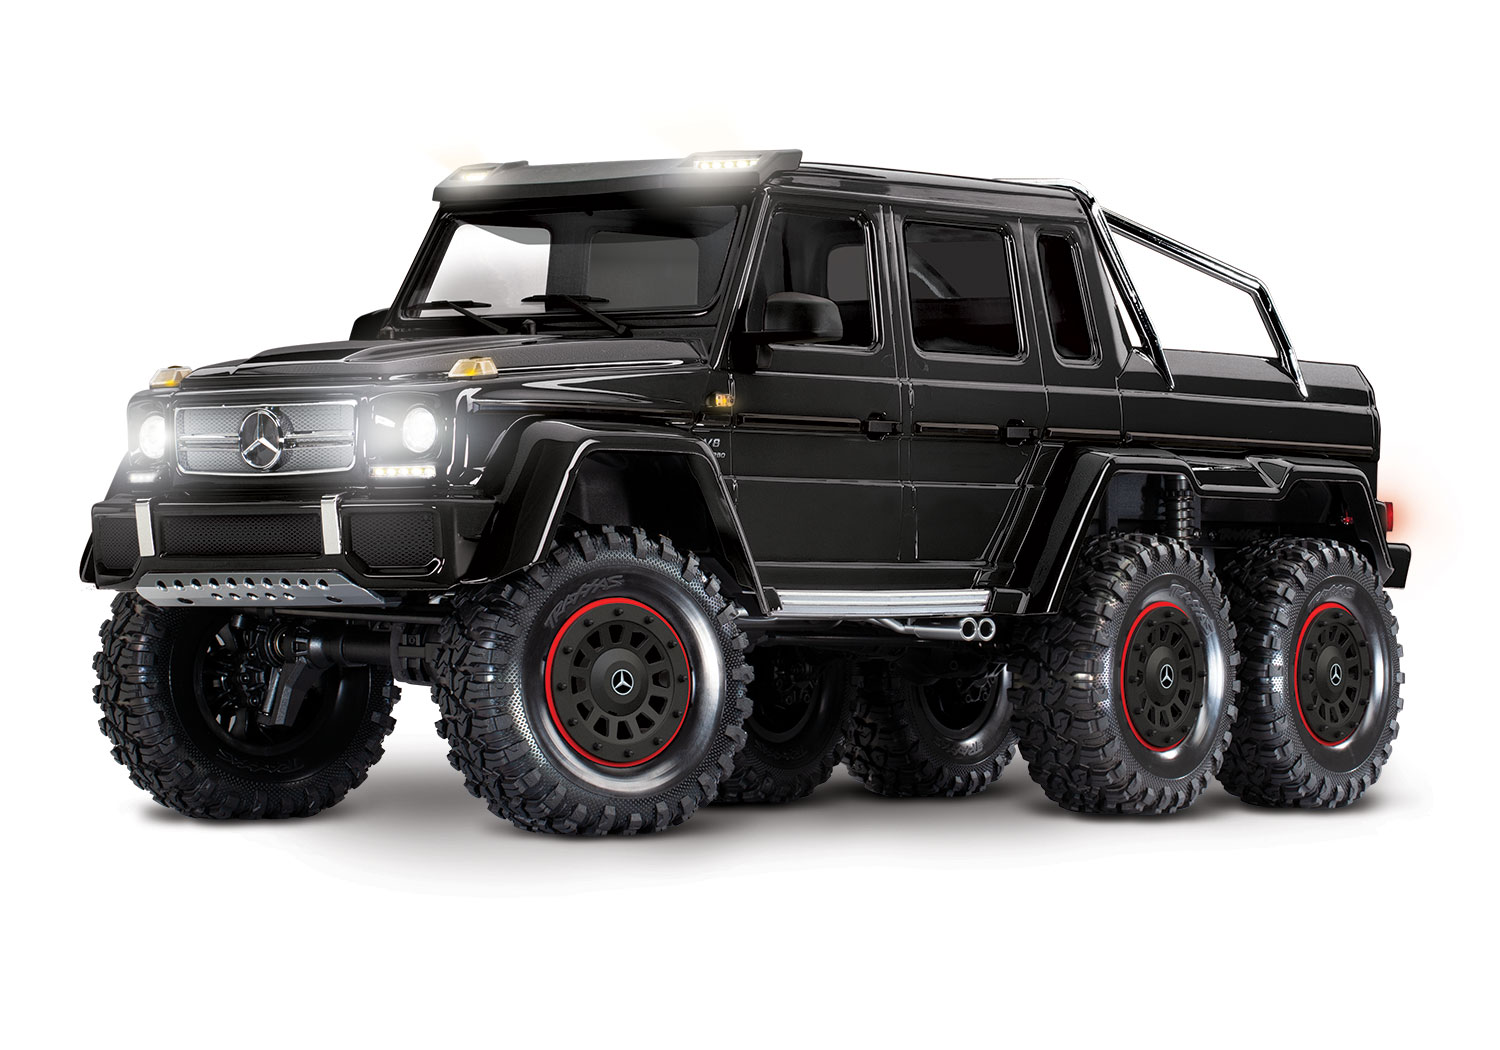 Kayhobbis Onlineshop For Rc Cars Drift Crawler Traxxas Mercedes Benz G63 Amg 6x6 Rtr With Light 6wd Scale Crawler Black